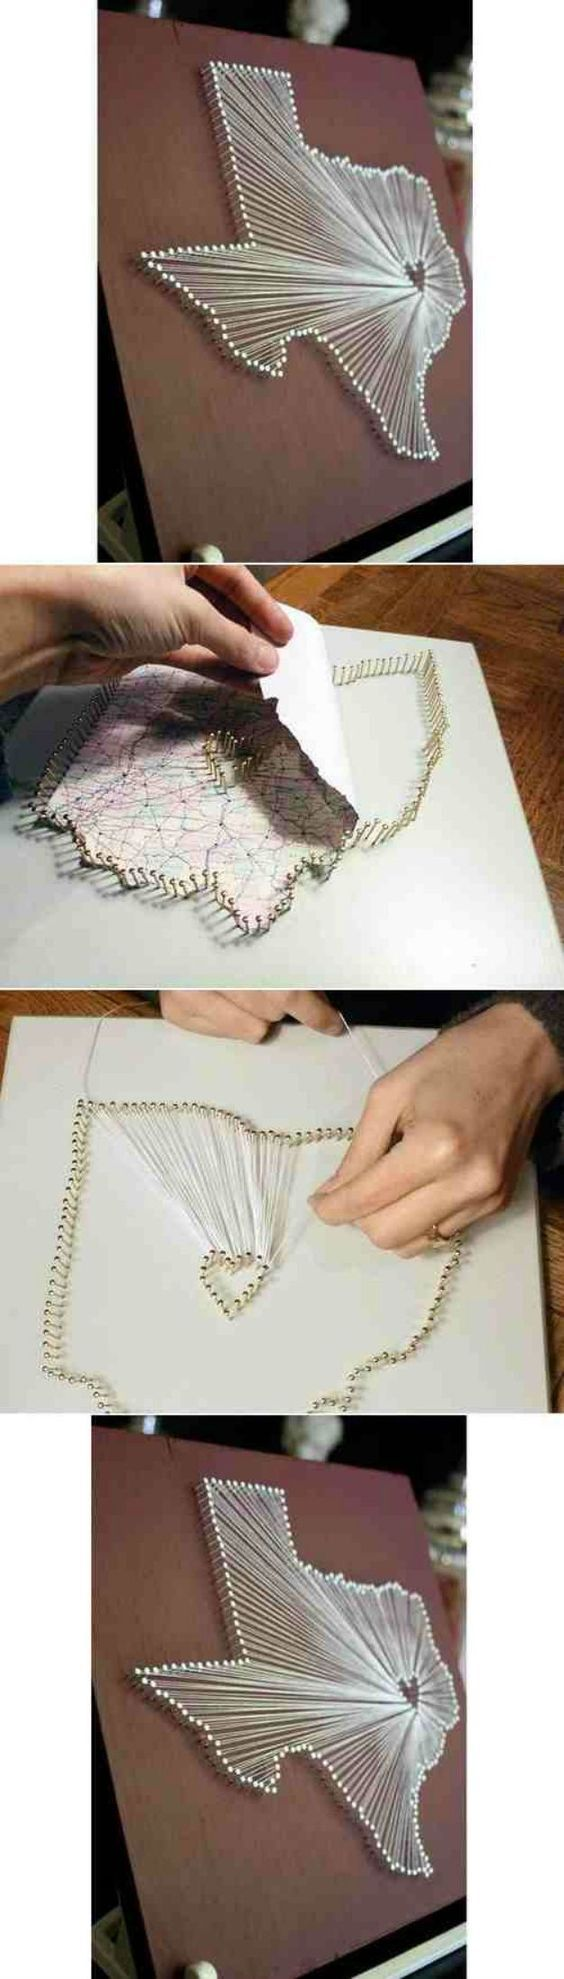 How To Make Quick And Easy Awesome Gifts For Your Girlfriend   DIY Projects & Ideas For Her By DIY Ready. http://diyready.com/28-diy-gifts-for-your-girlfriend-christmas-gifts-for-girlfriend/: